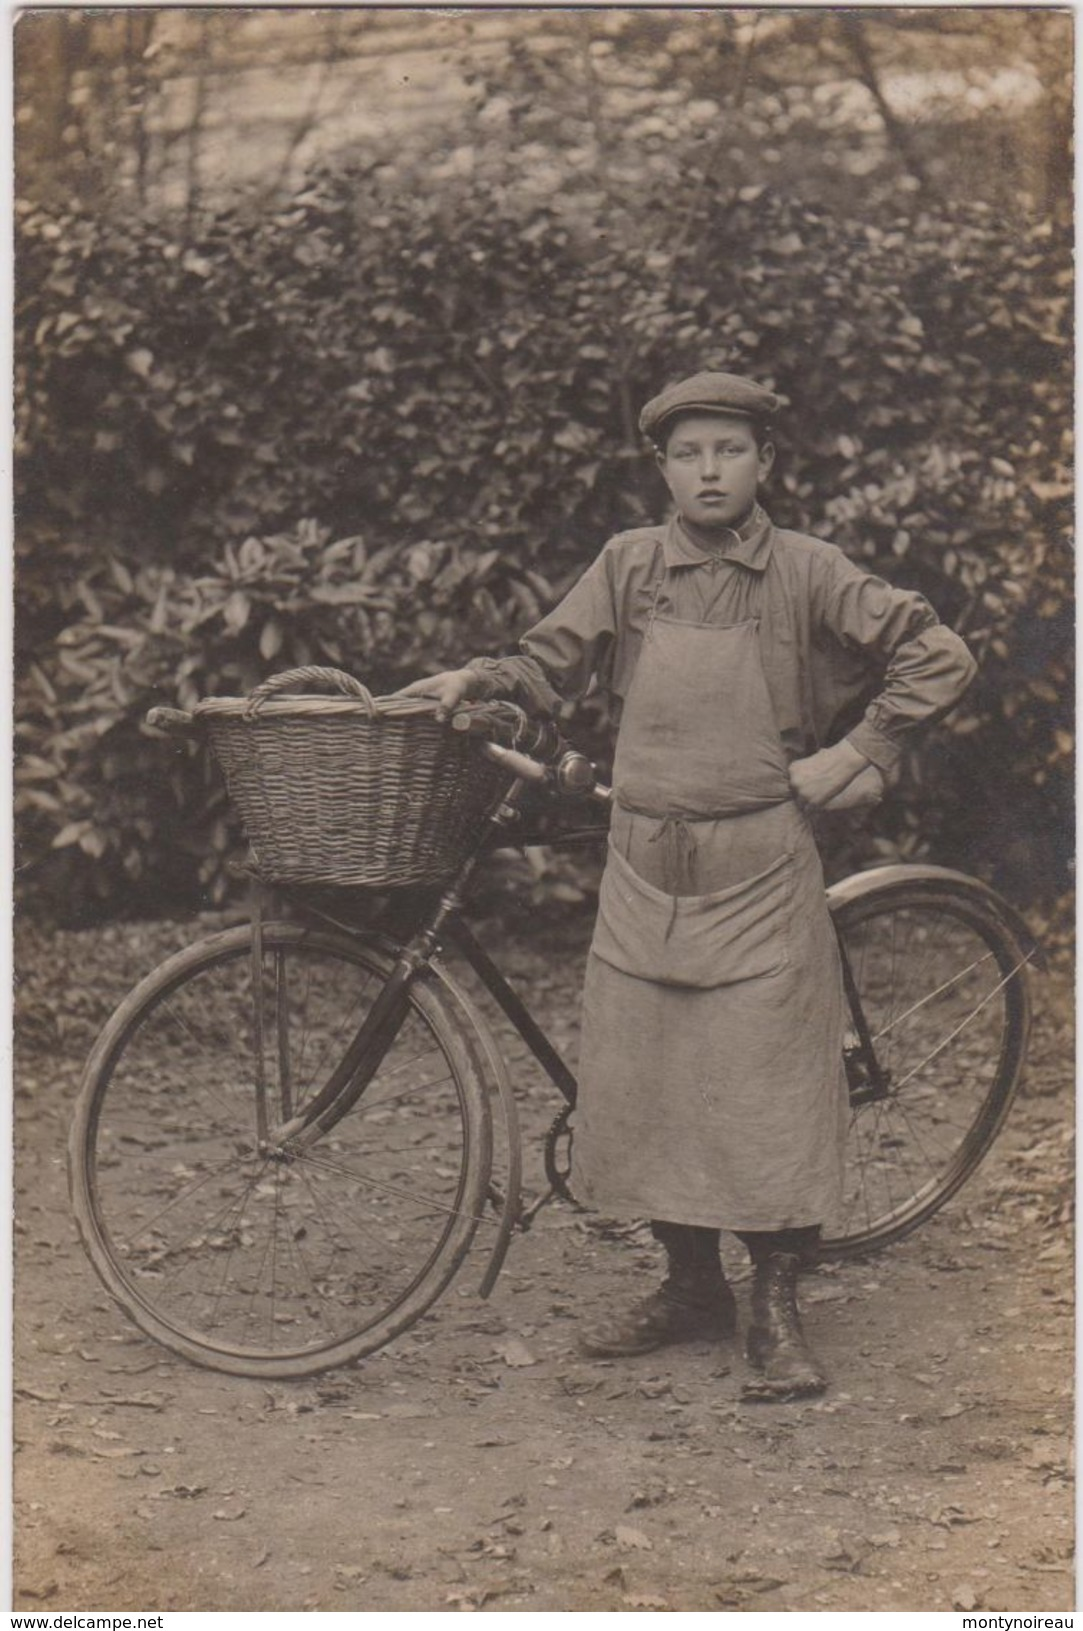 636_001_sport-cyclisme-velo-carte-photo-a-localise.jpg